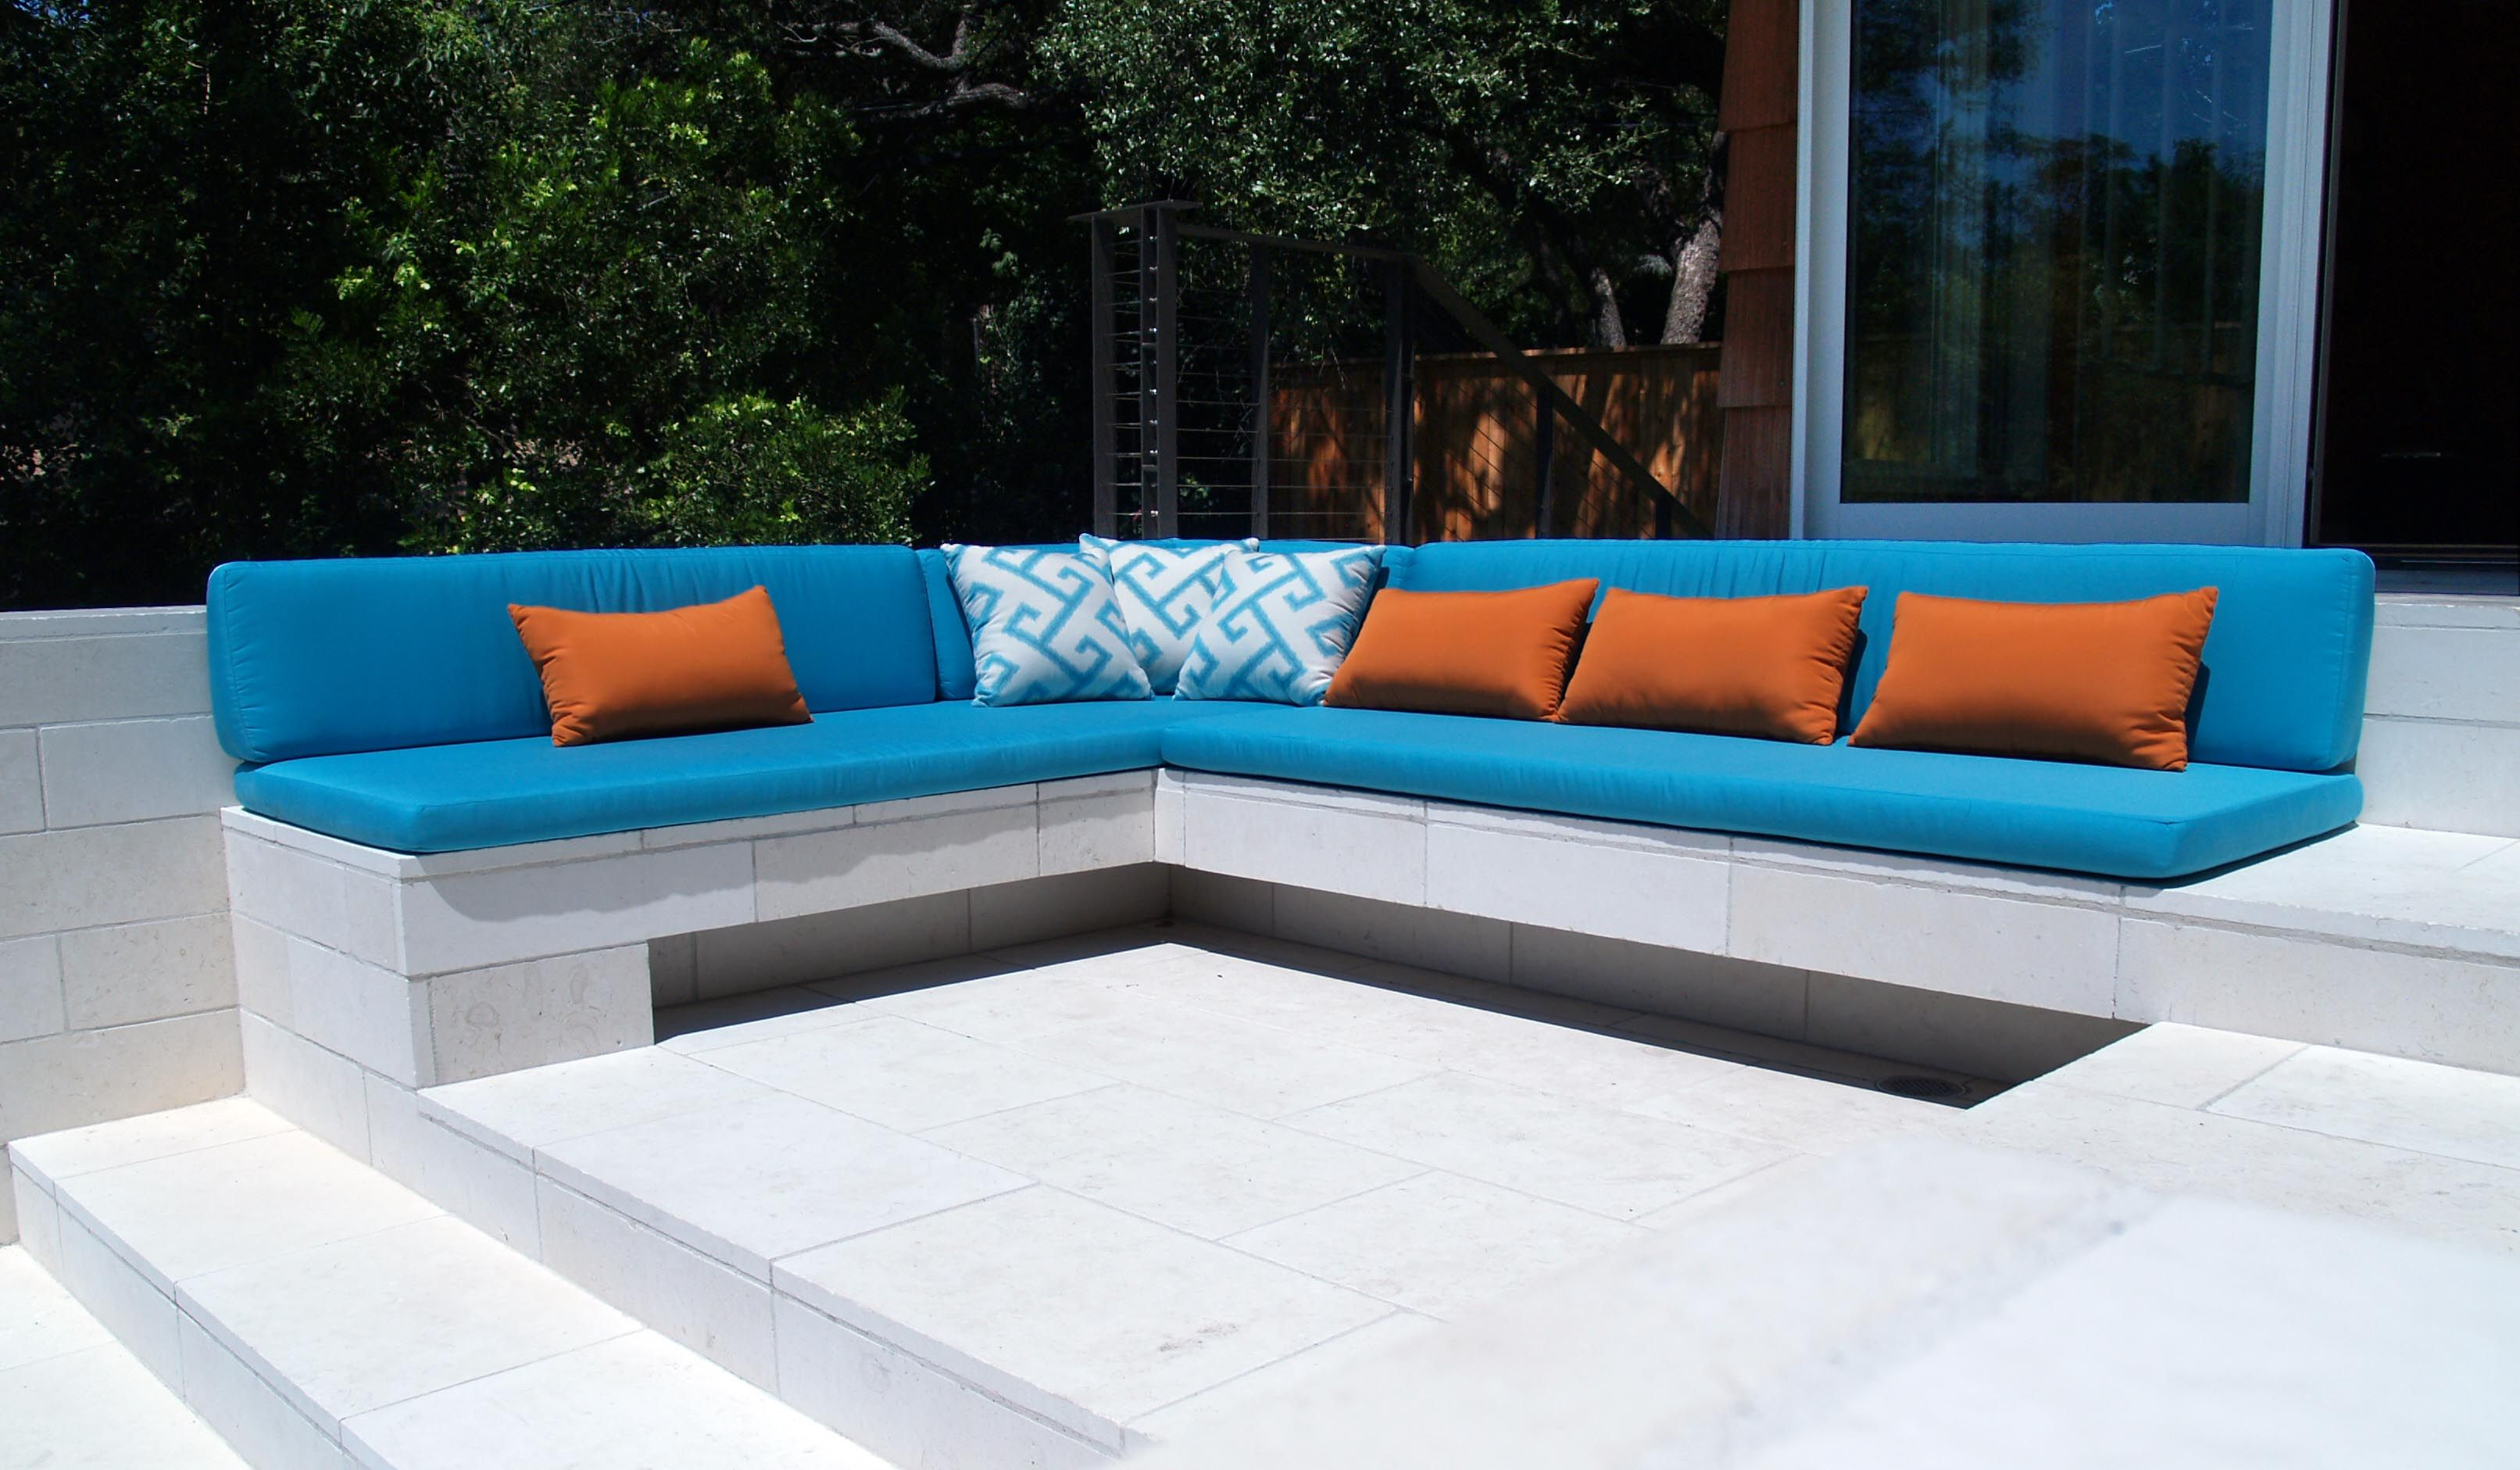 Brand New Outdoor L Shape Sofa Set Furniture And Decor Exchange Your Source To Buy And Sell Luxury Furniture And Deco L Shape Sofa Set L Shaped Sofa Sofa Set